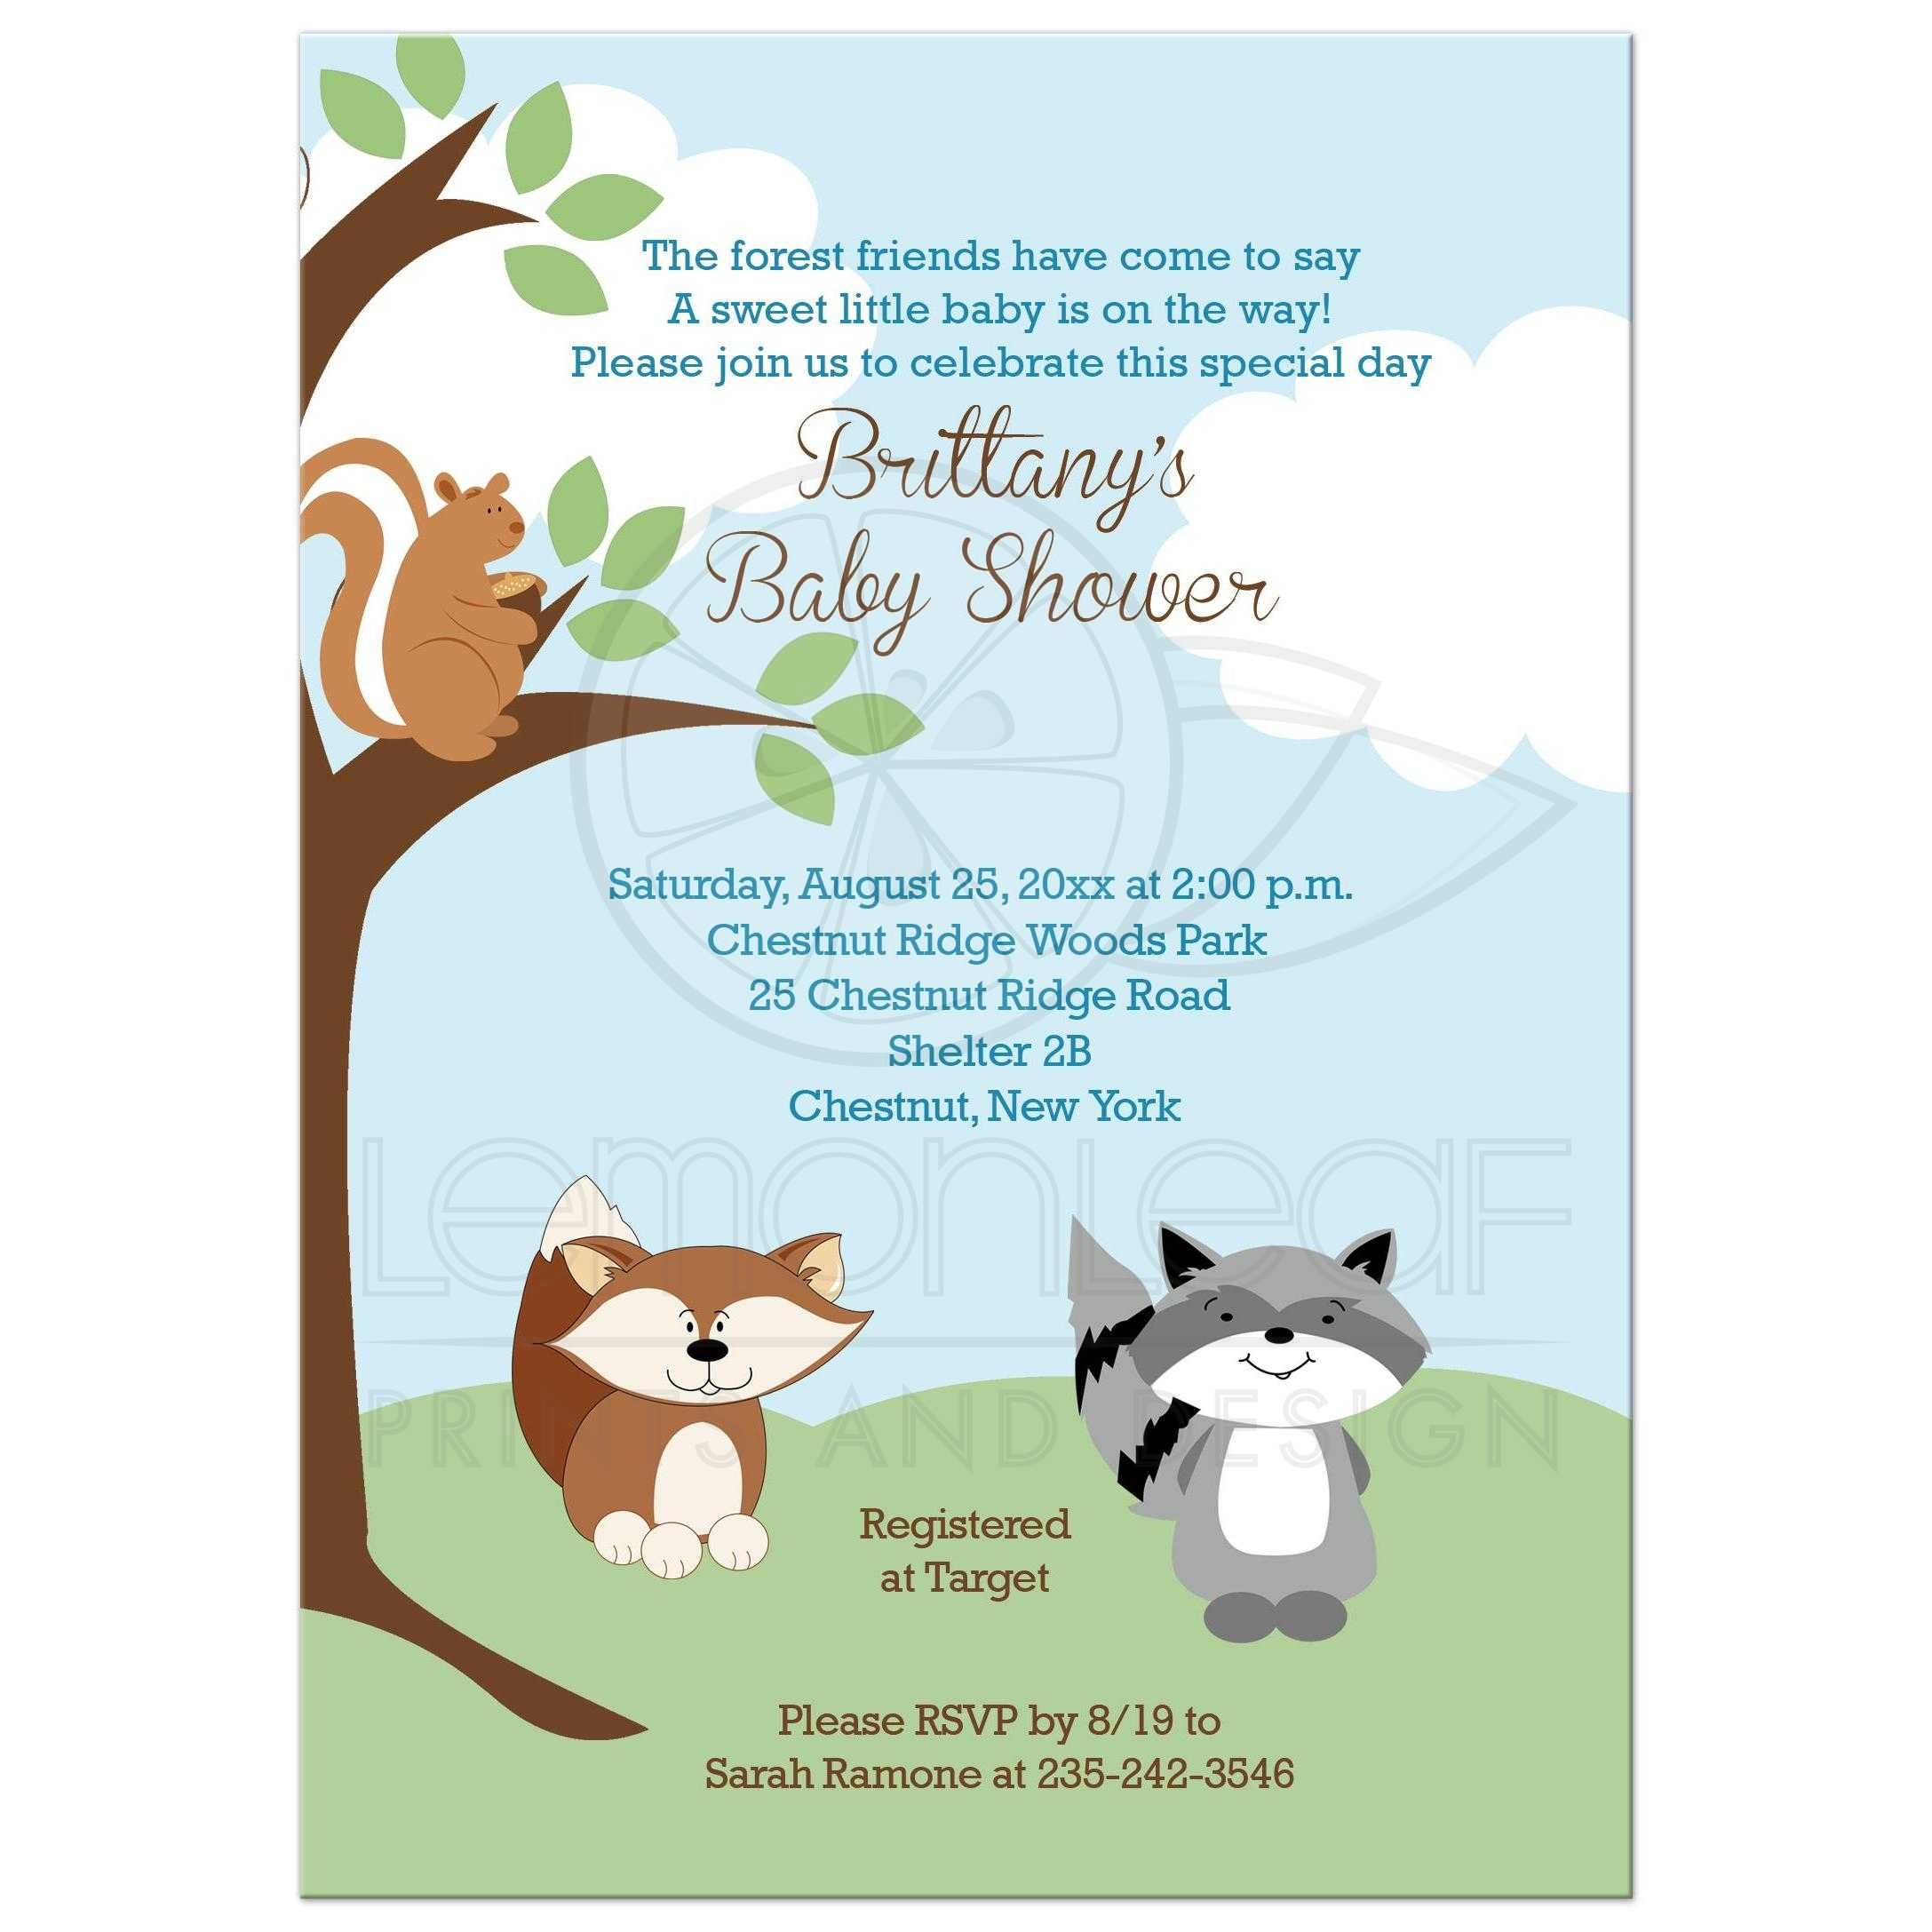 Enchanted Forest Animals Woodland Baby Shower Invitation